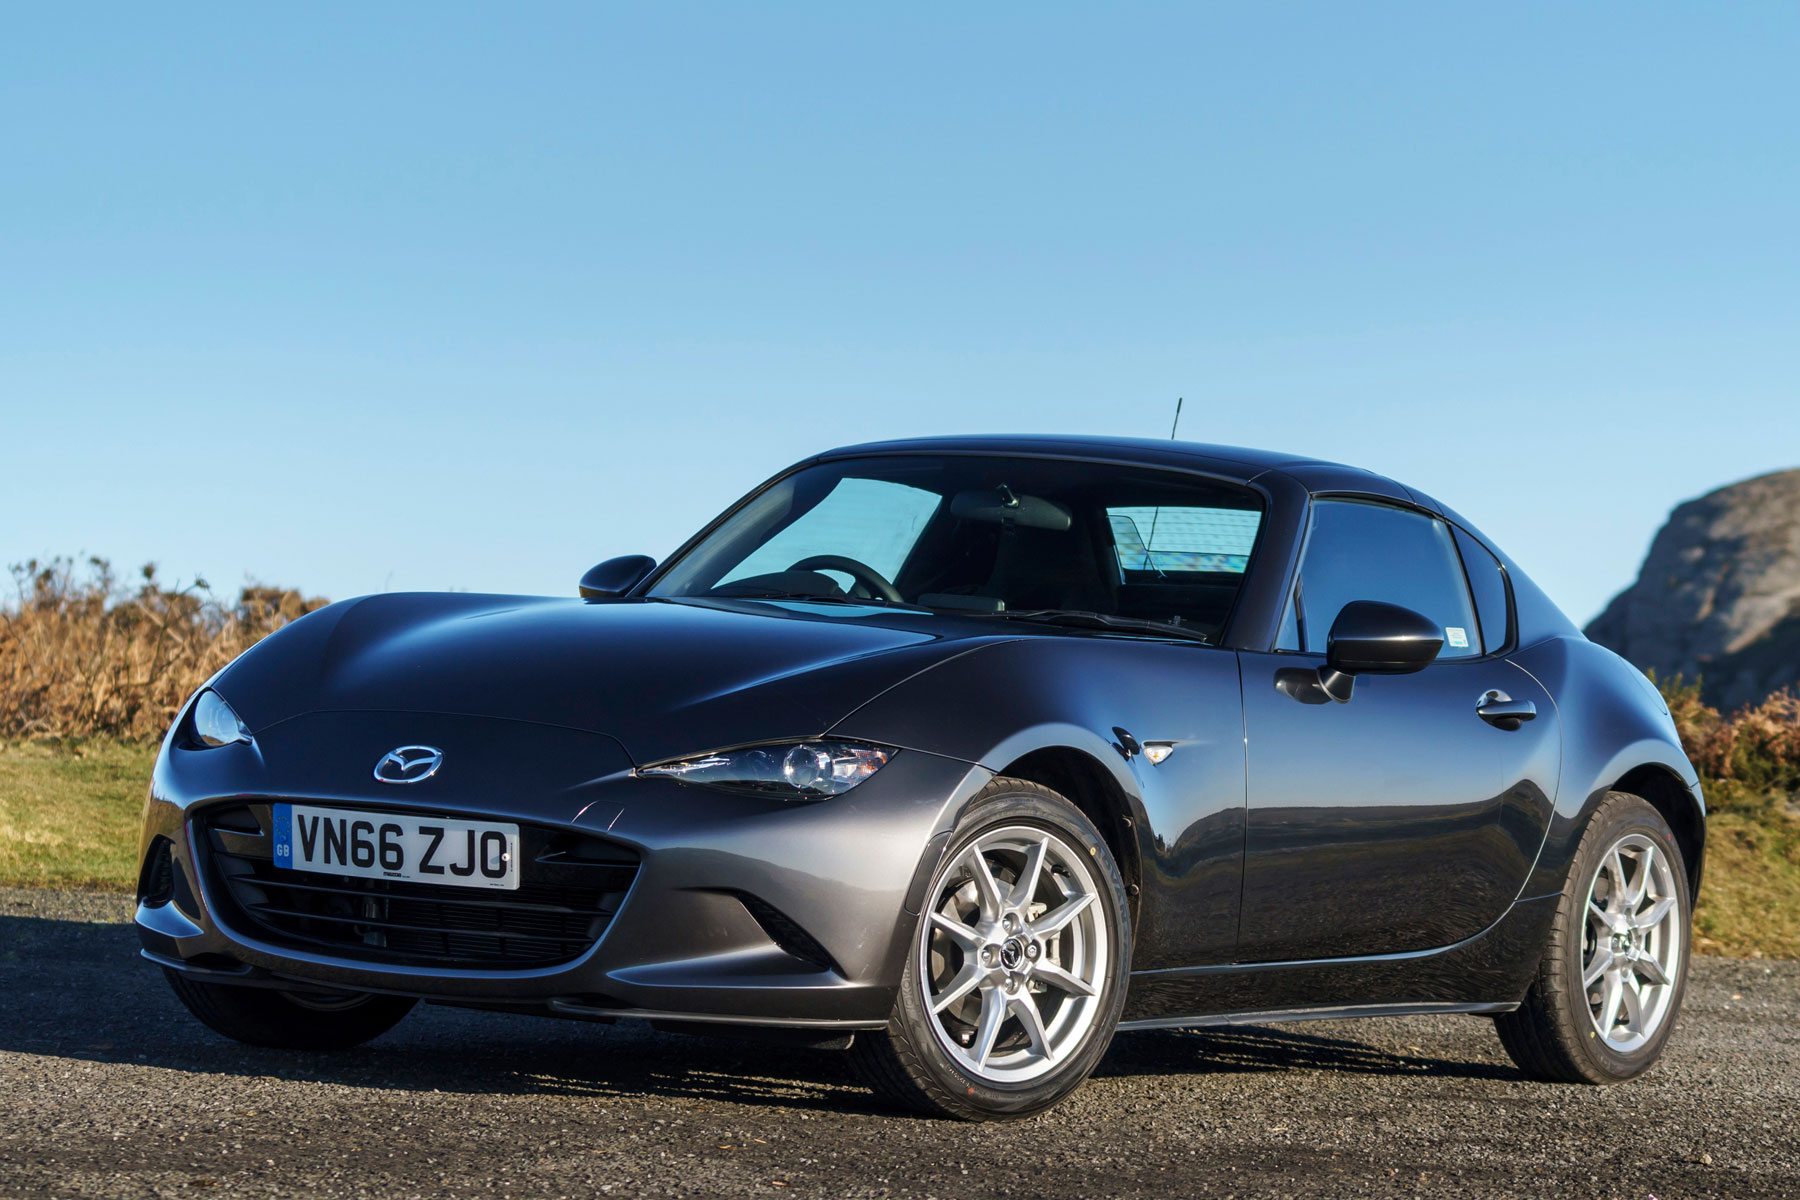 mazda mx 5 rf review notes from a first date motoring. Black Bedroom Furniture Sets. Home Design Ideas